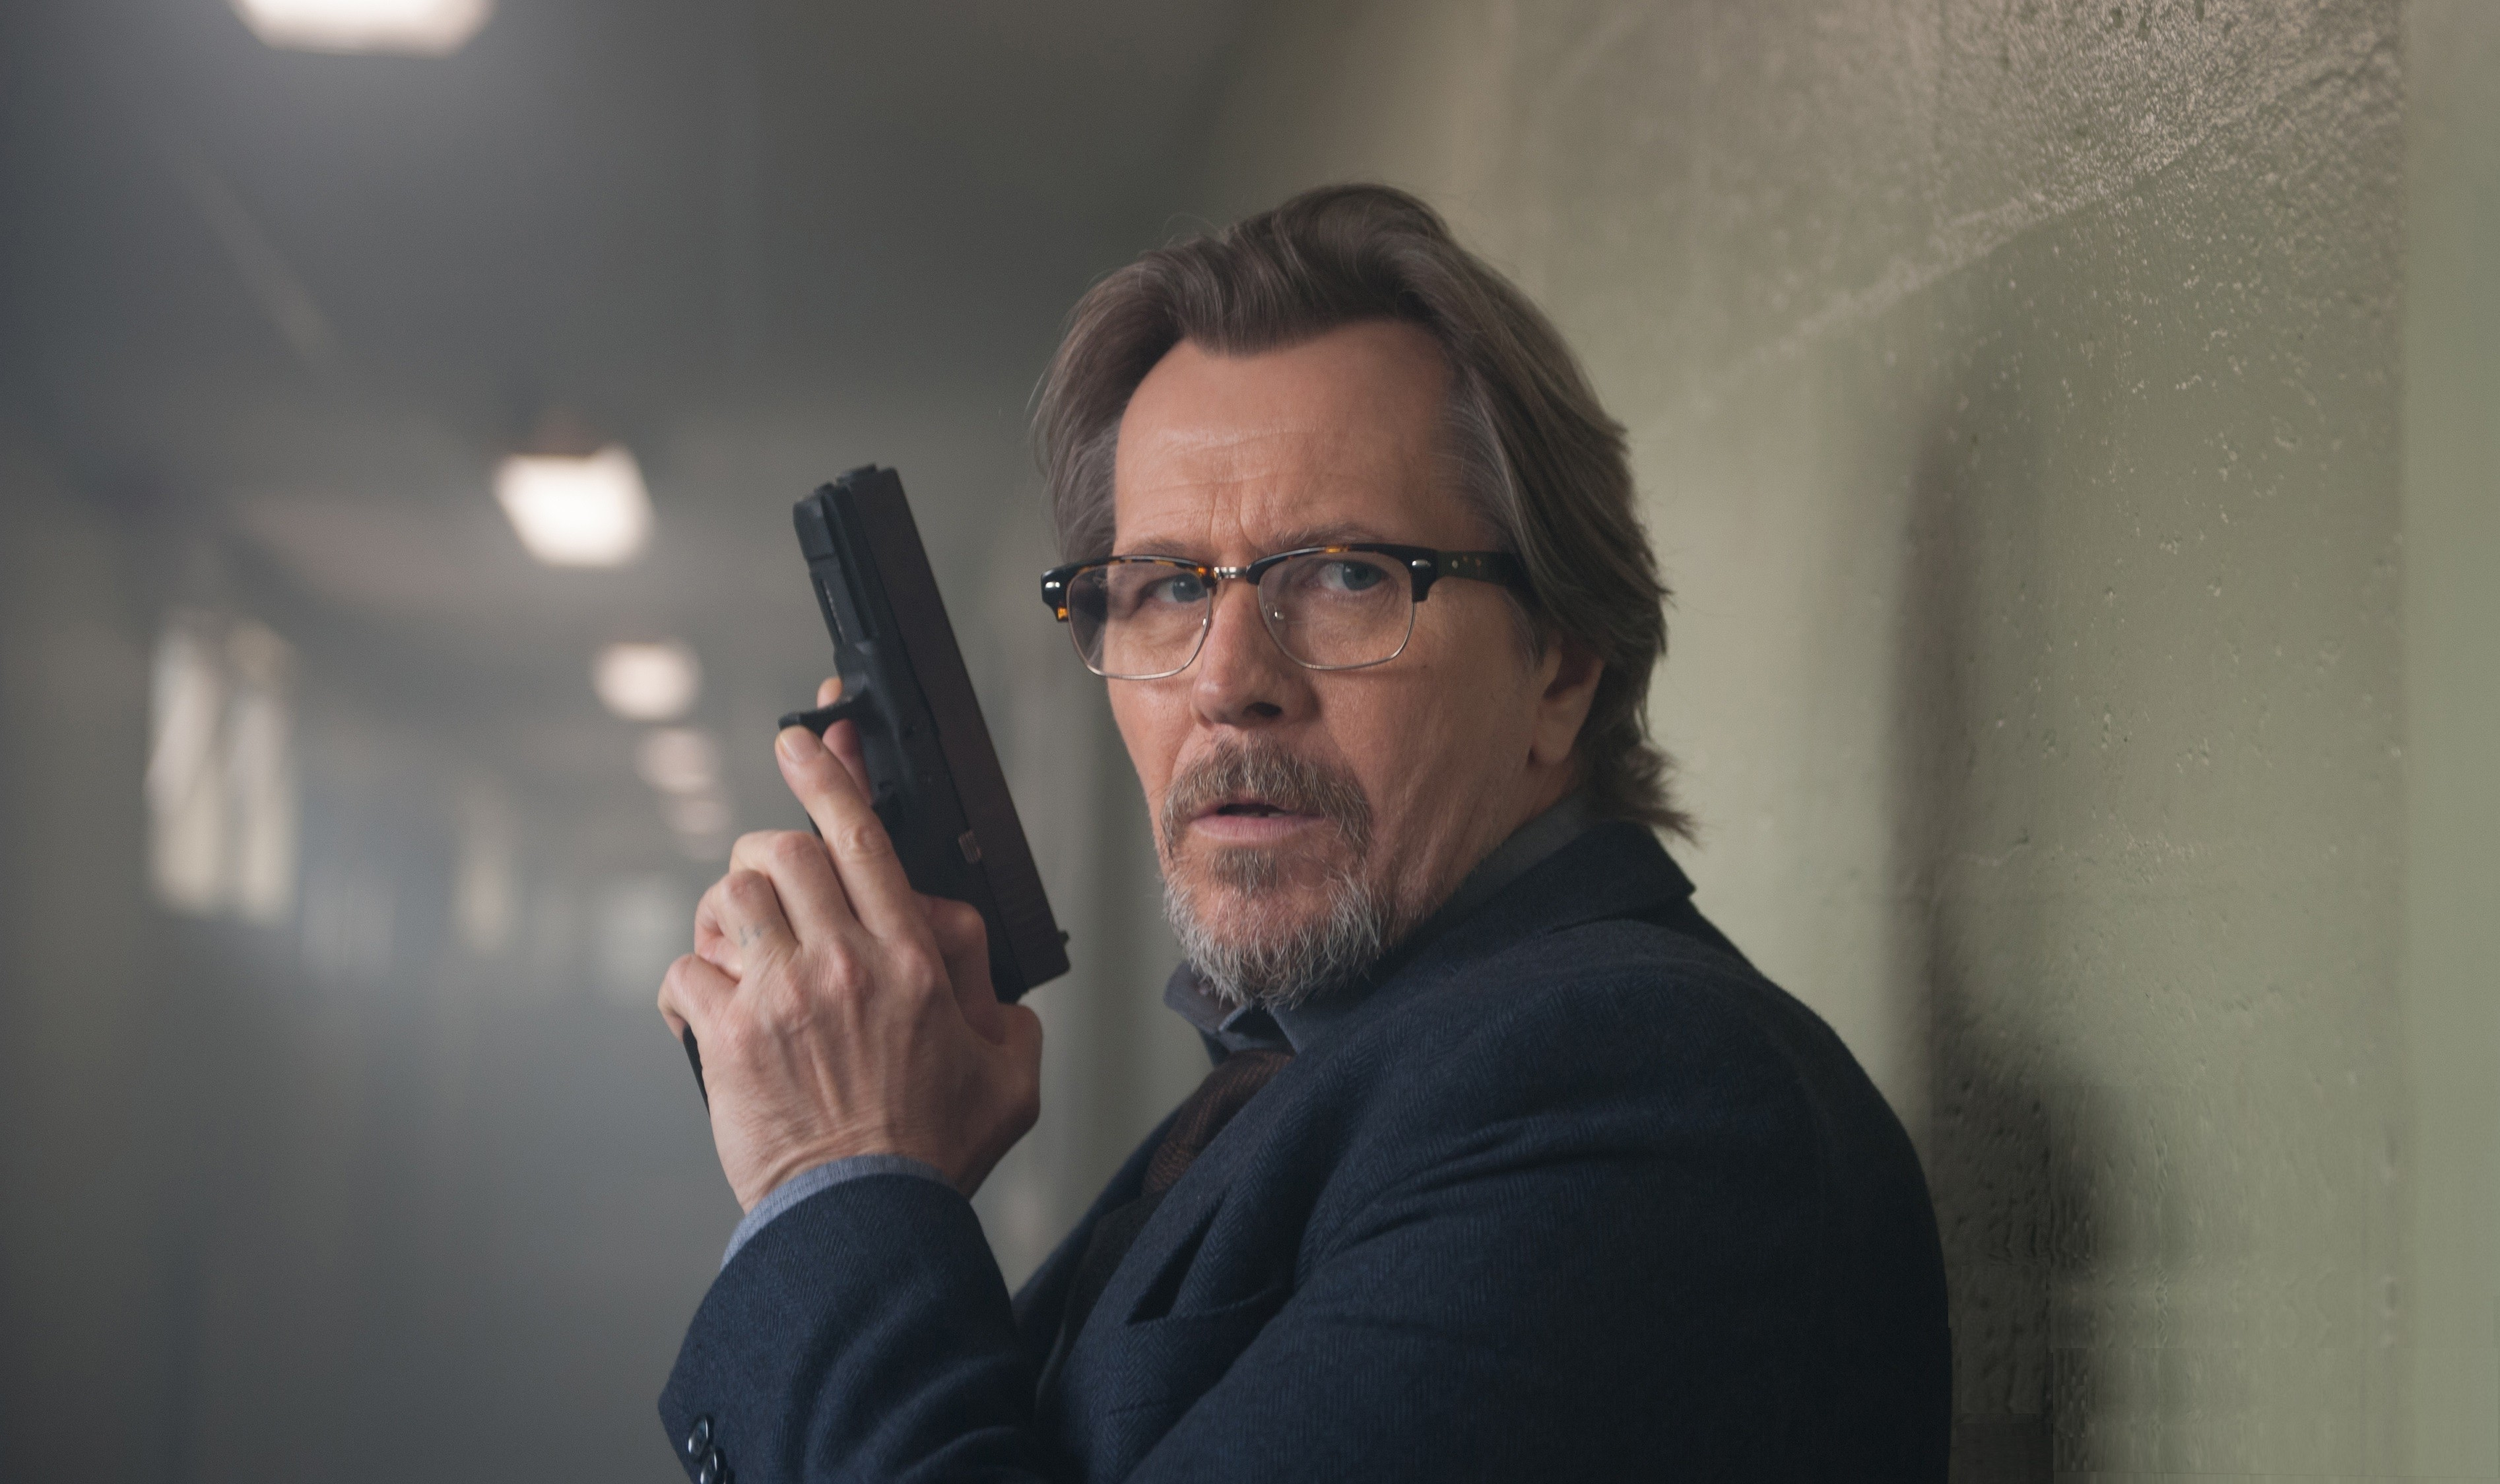 Criminal Gary Oldman Best Movies Of 2016 9697